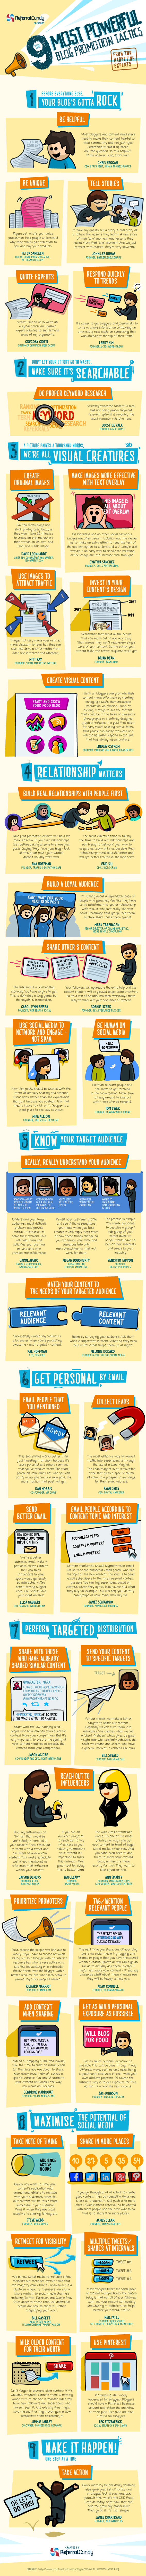 9-most-powerful-blog-promotion-tactics-top-marketing-experts